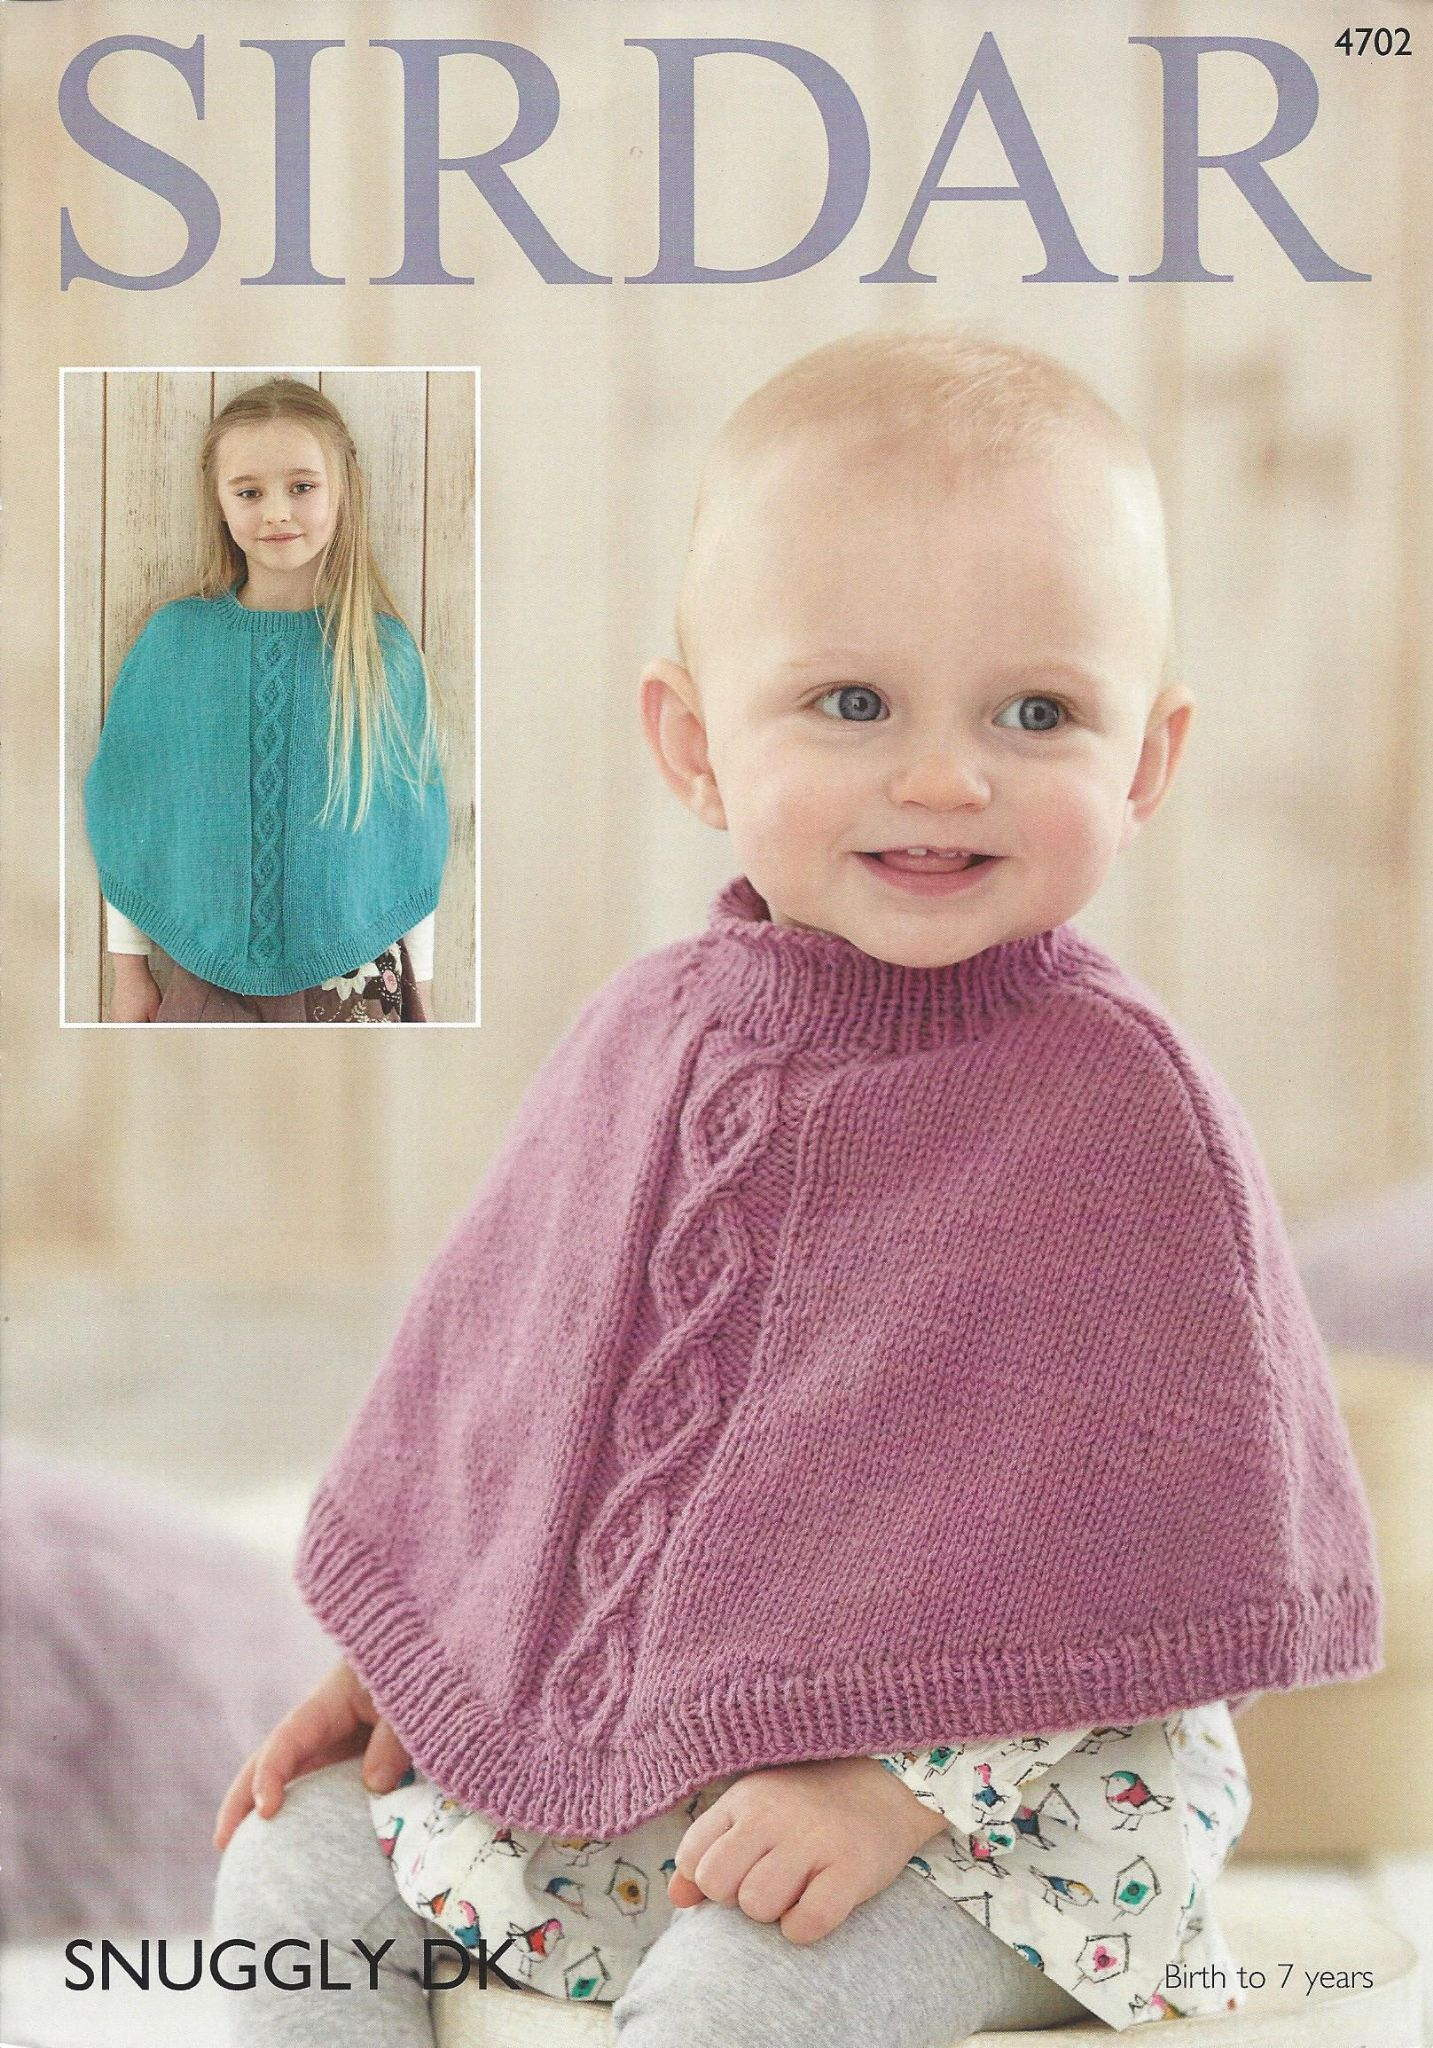 Machine Knitting Patterns For Babies : Sirdar Snuggly DK - 4702 Ponchos Knitting Pattern